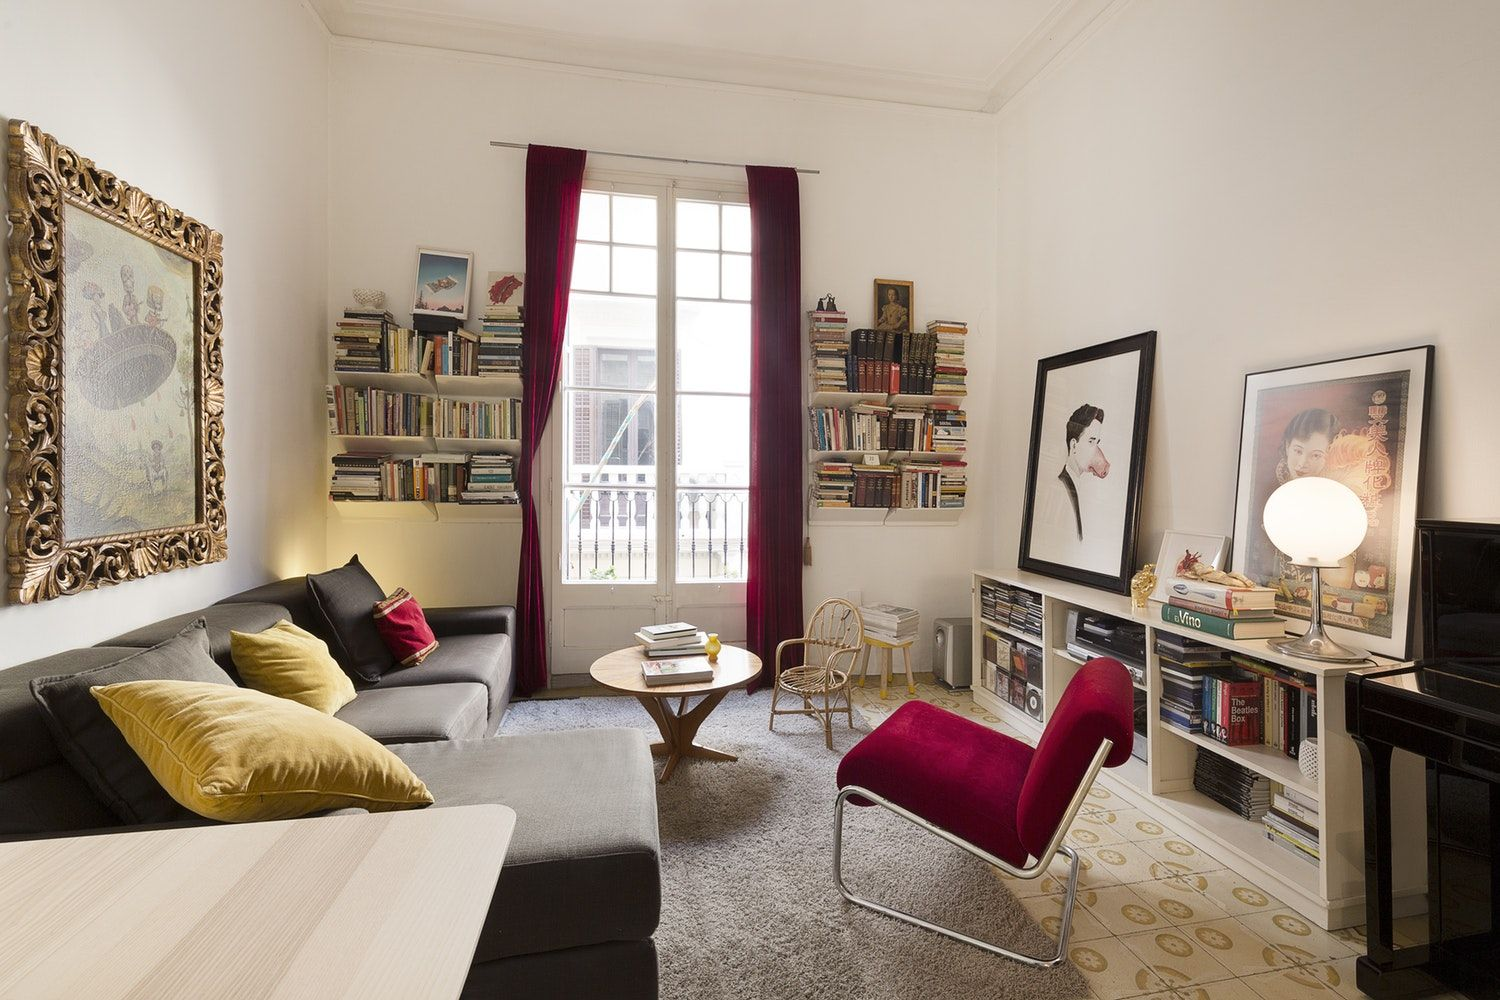 Tour an Art Gallery Owner's Eclectic Barcelona Apartment